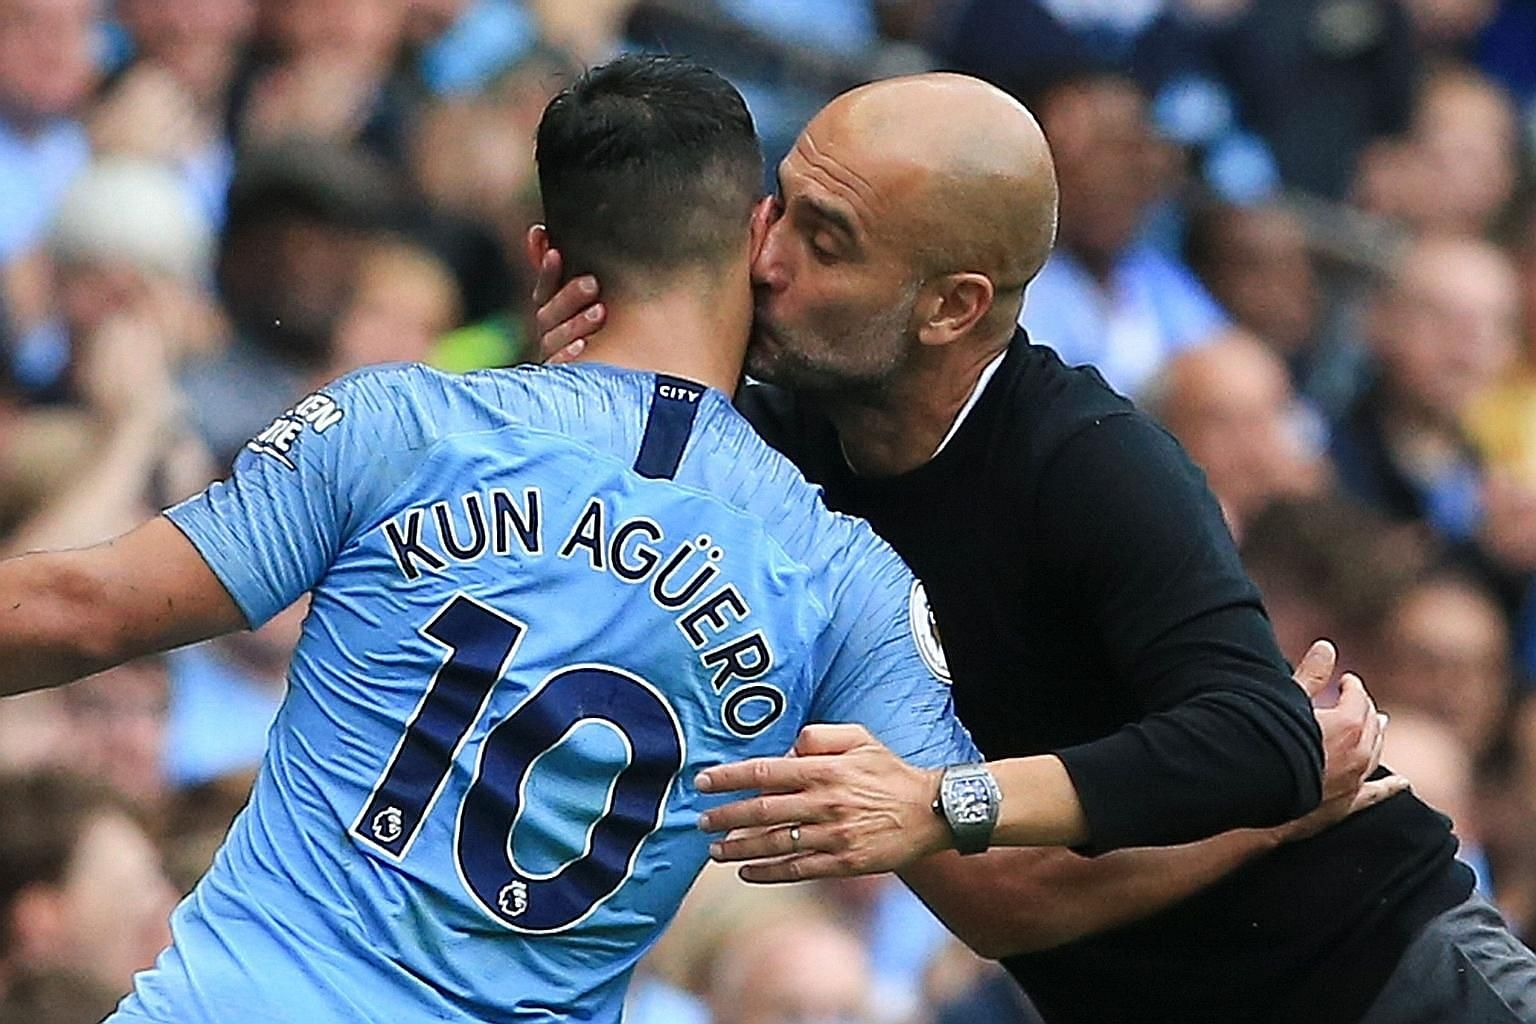 City manager Pep Guardiola kissing Sergio Aguero as the Argentinian striker leaves the pitch after Leroy Sane replaced him.